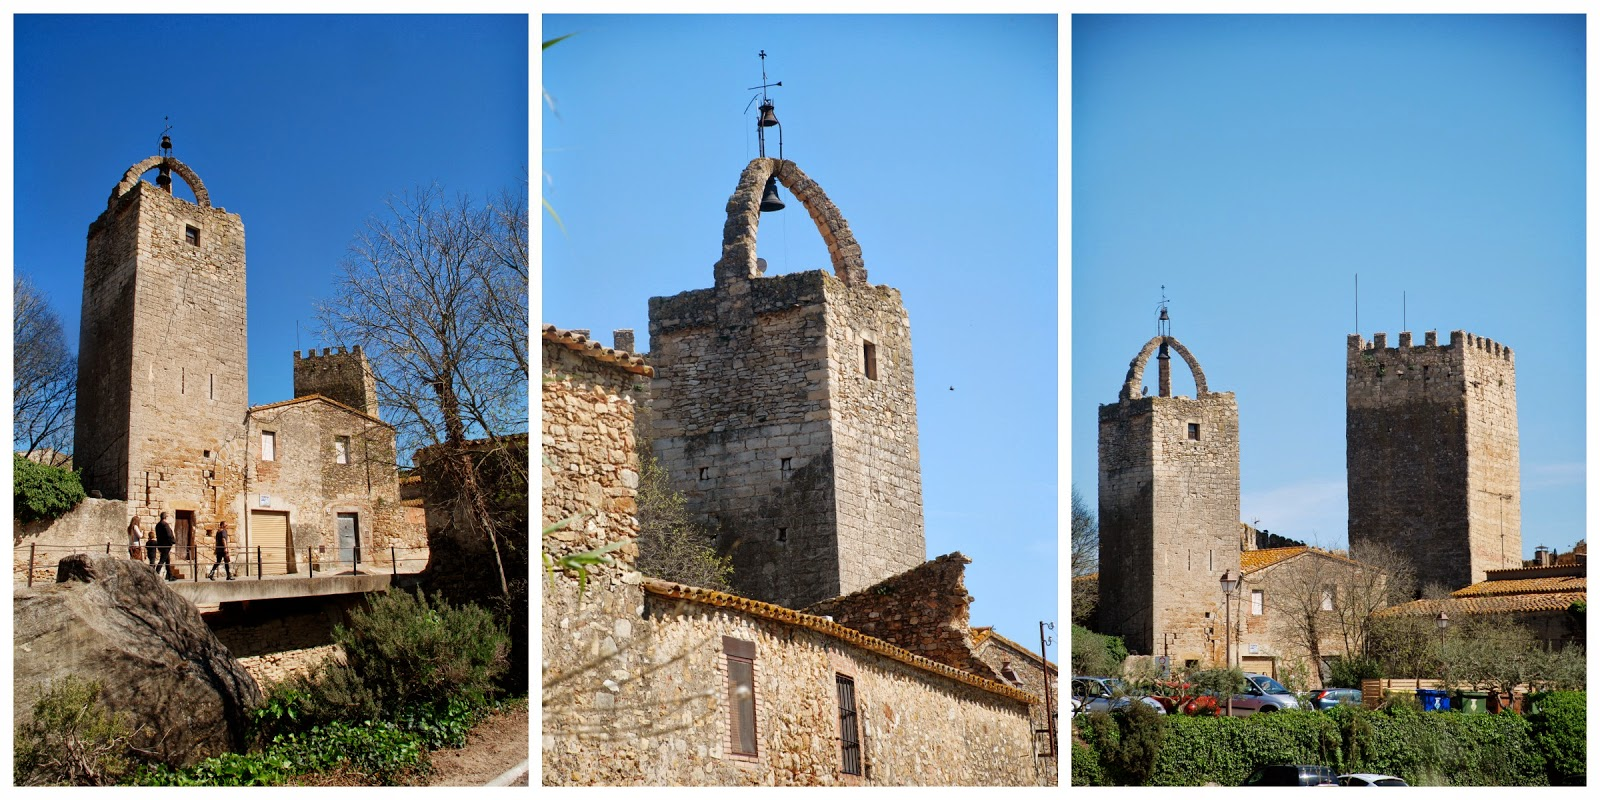 Peratallada ... the village that time forgot